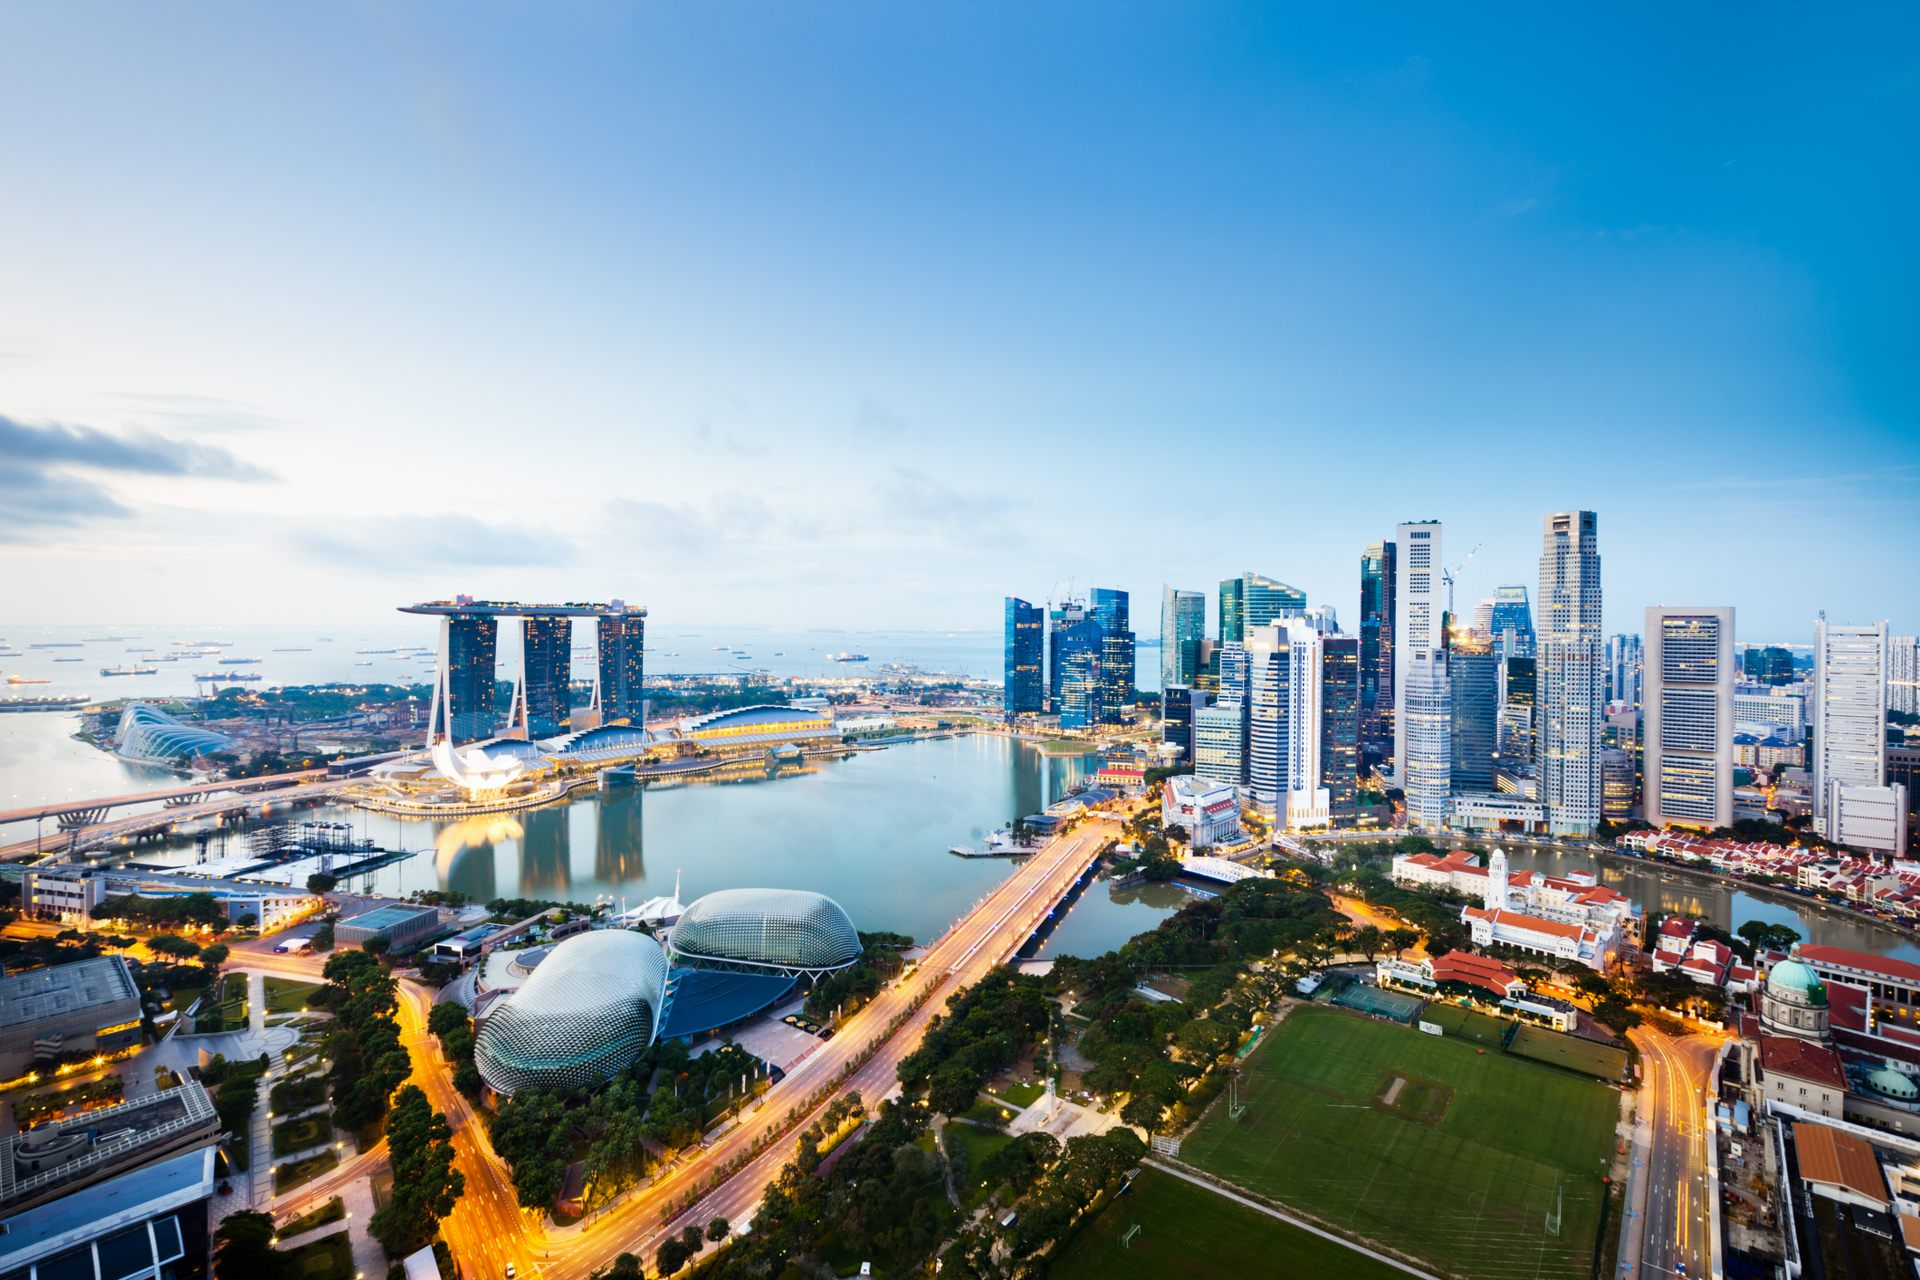 Asia's leading digital agency, reinforces its presence in Asia by announcing its new office in Singapore